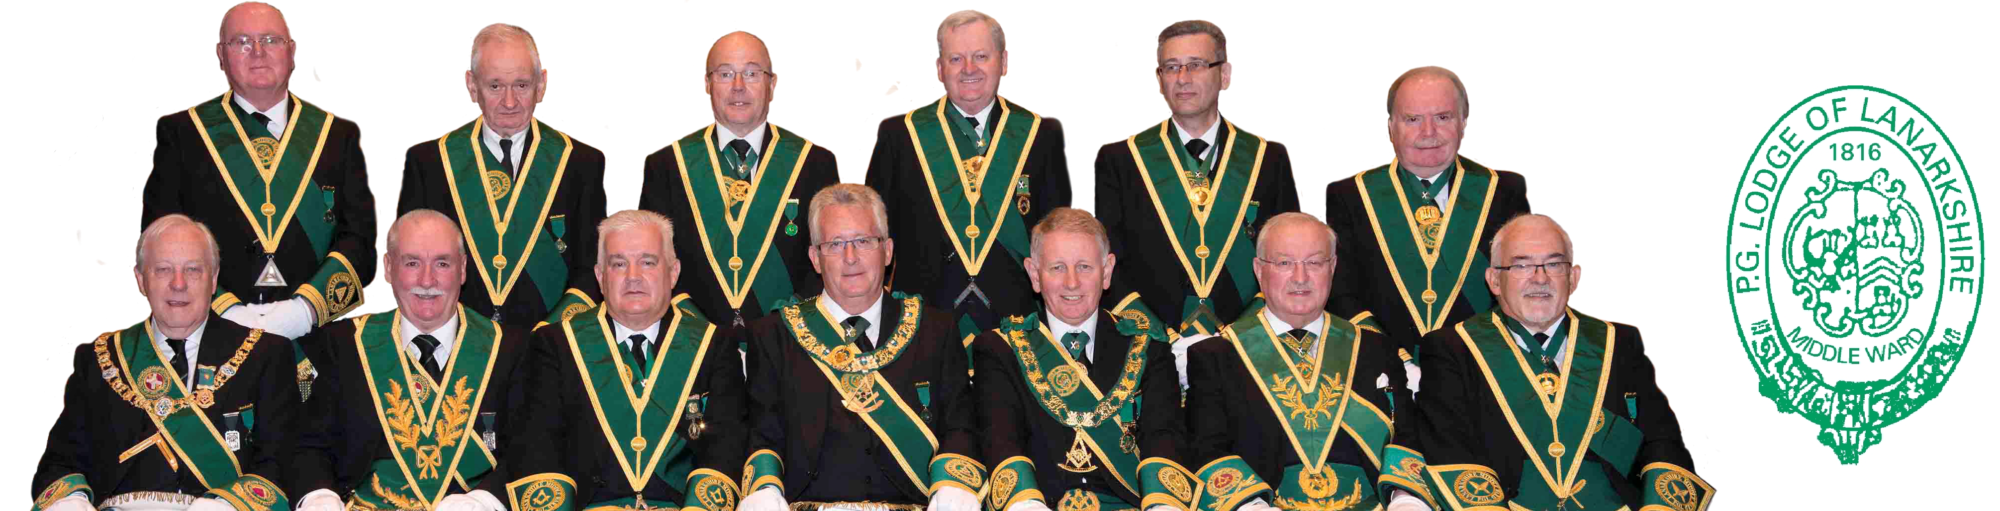 The Provincial Grand Lodge of Lanarkshire Middle Ward